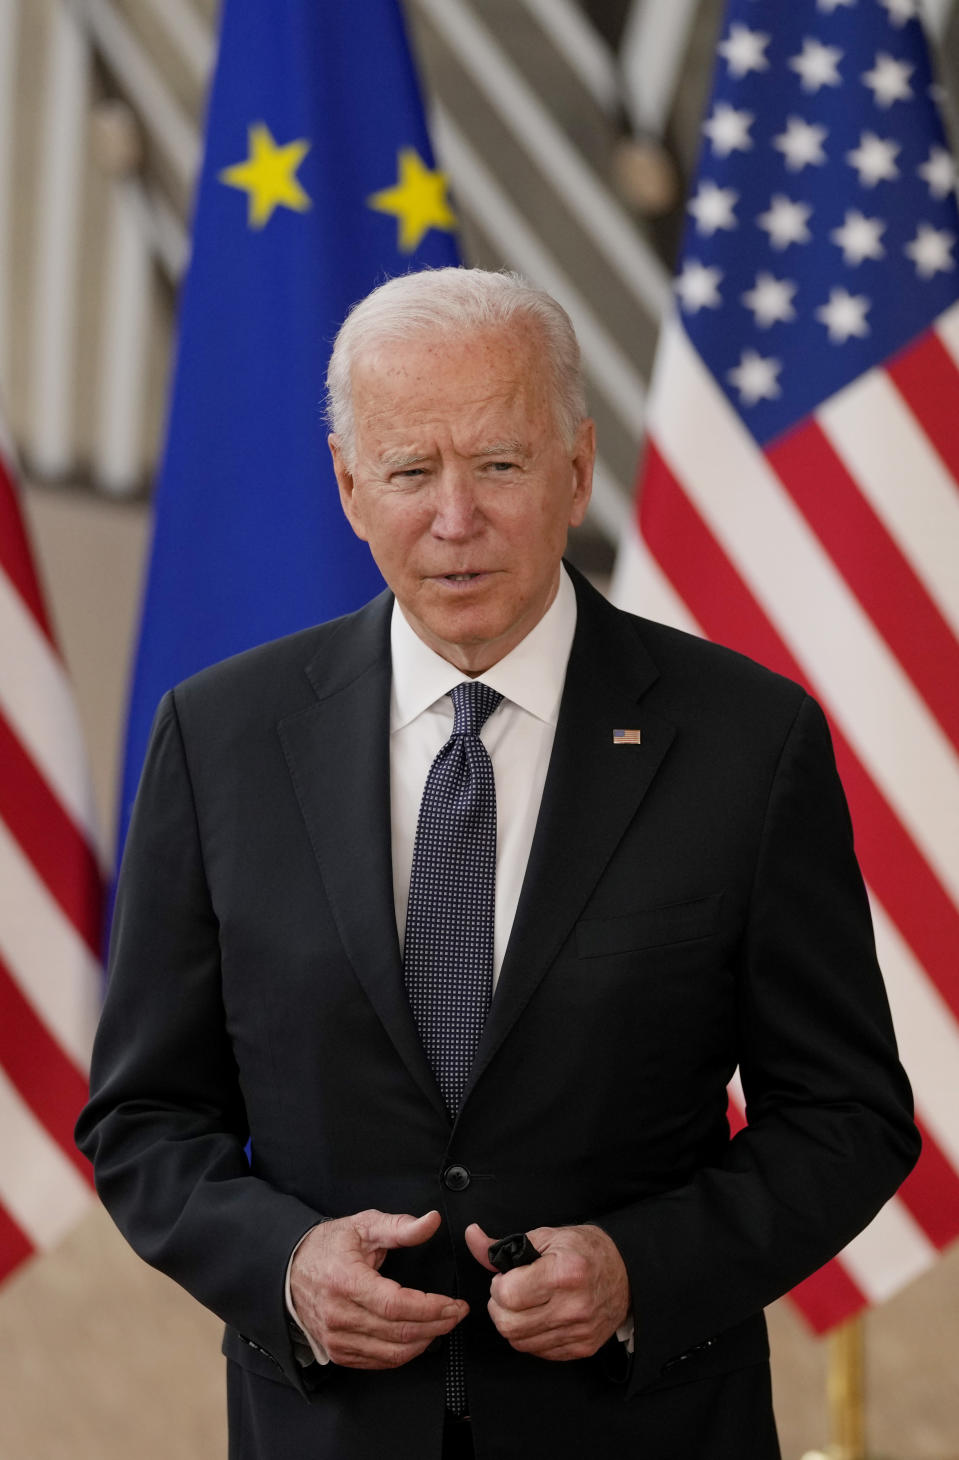 U.S. President Joe Biden speaks with the media as he arrives for the EU-US summit at the European Council building in Brussels, Tuesday, June 15, 2021. (AP Photo/Francisco Seco)